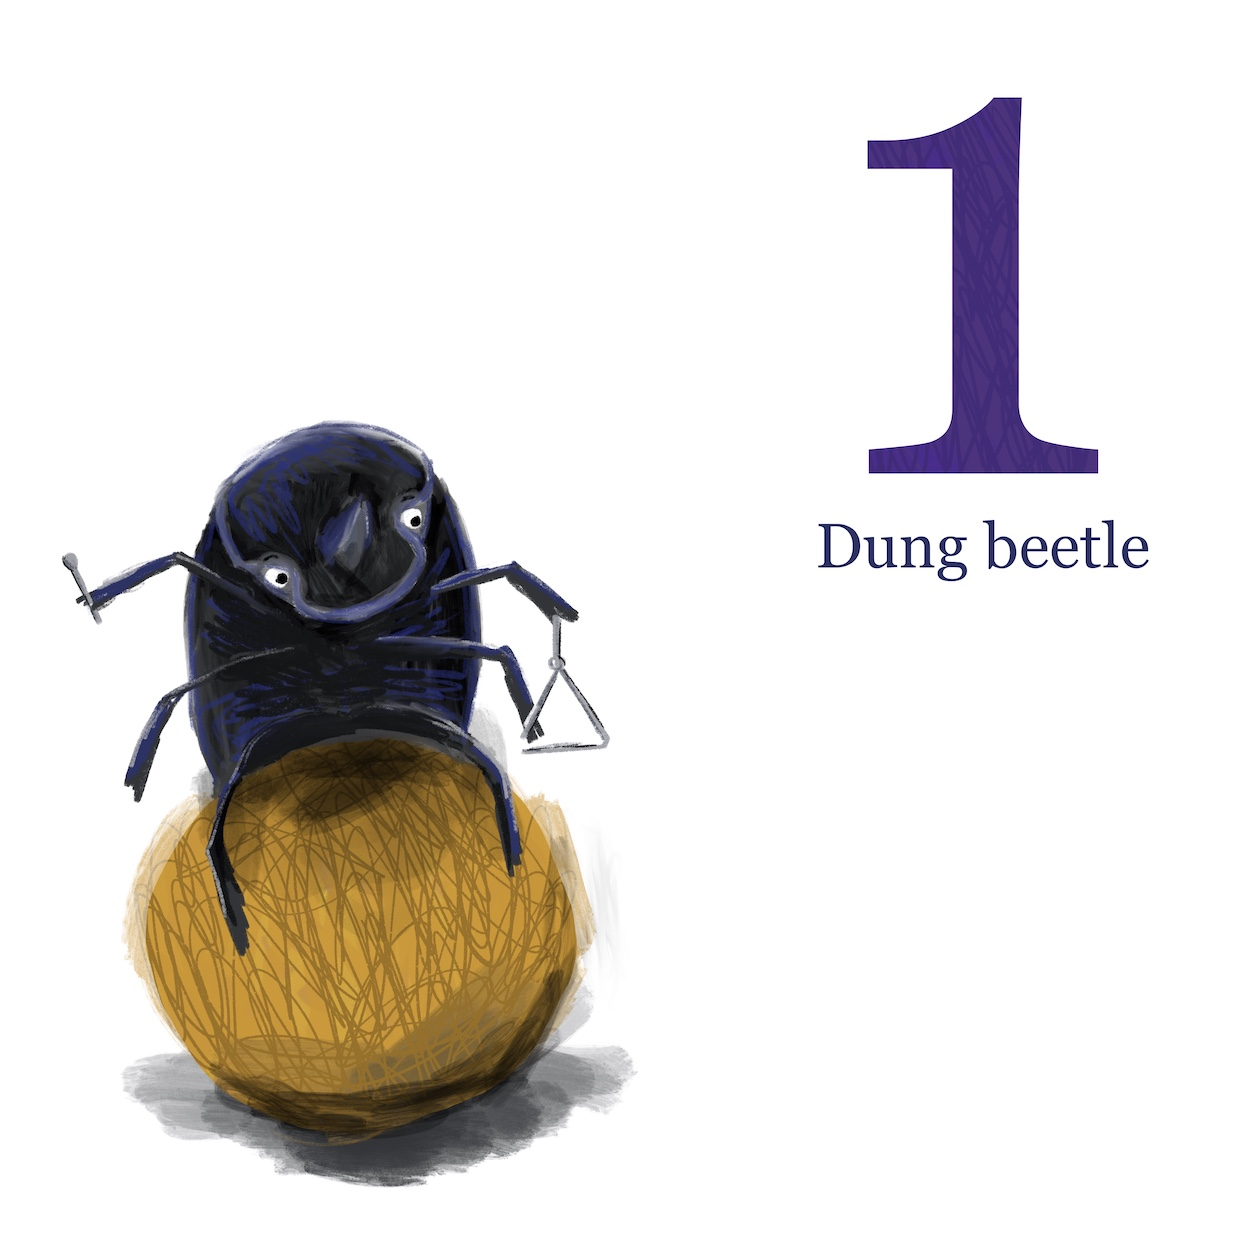 Dung Beetle by Emily House